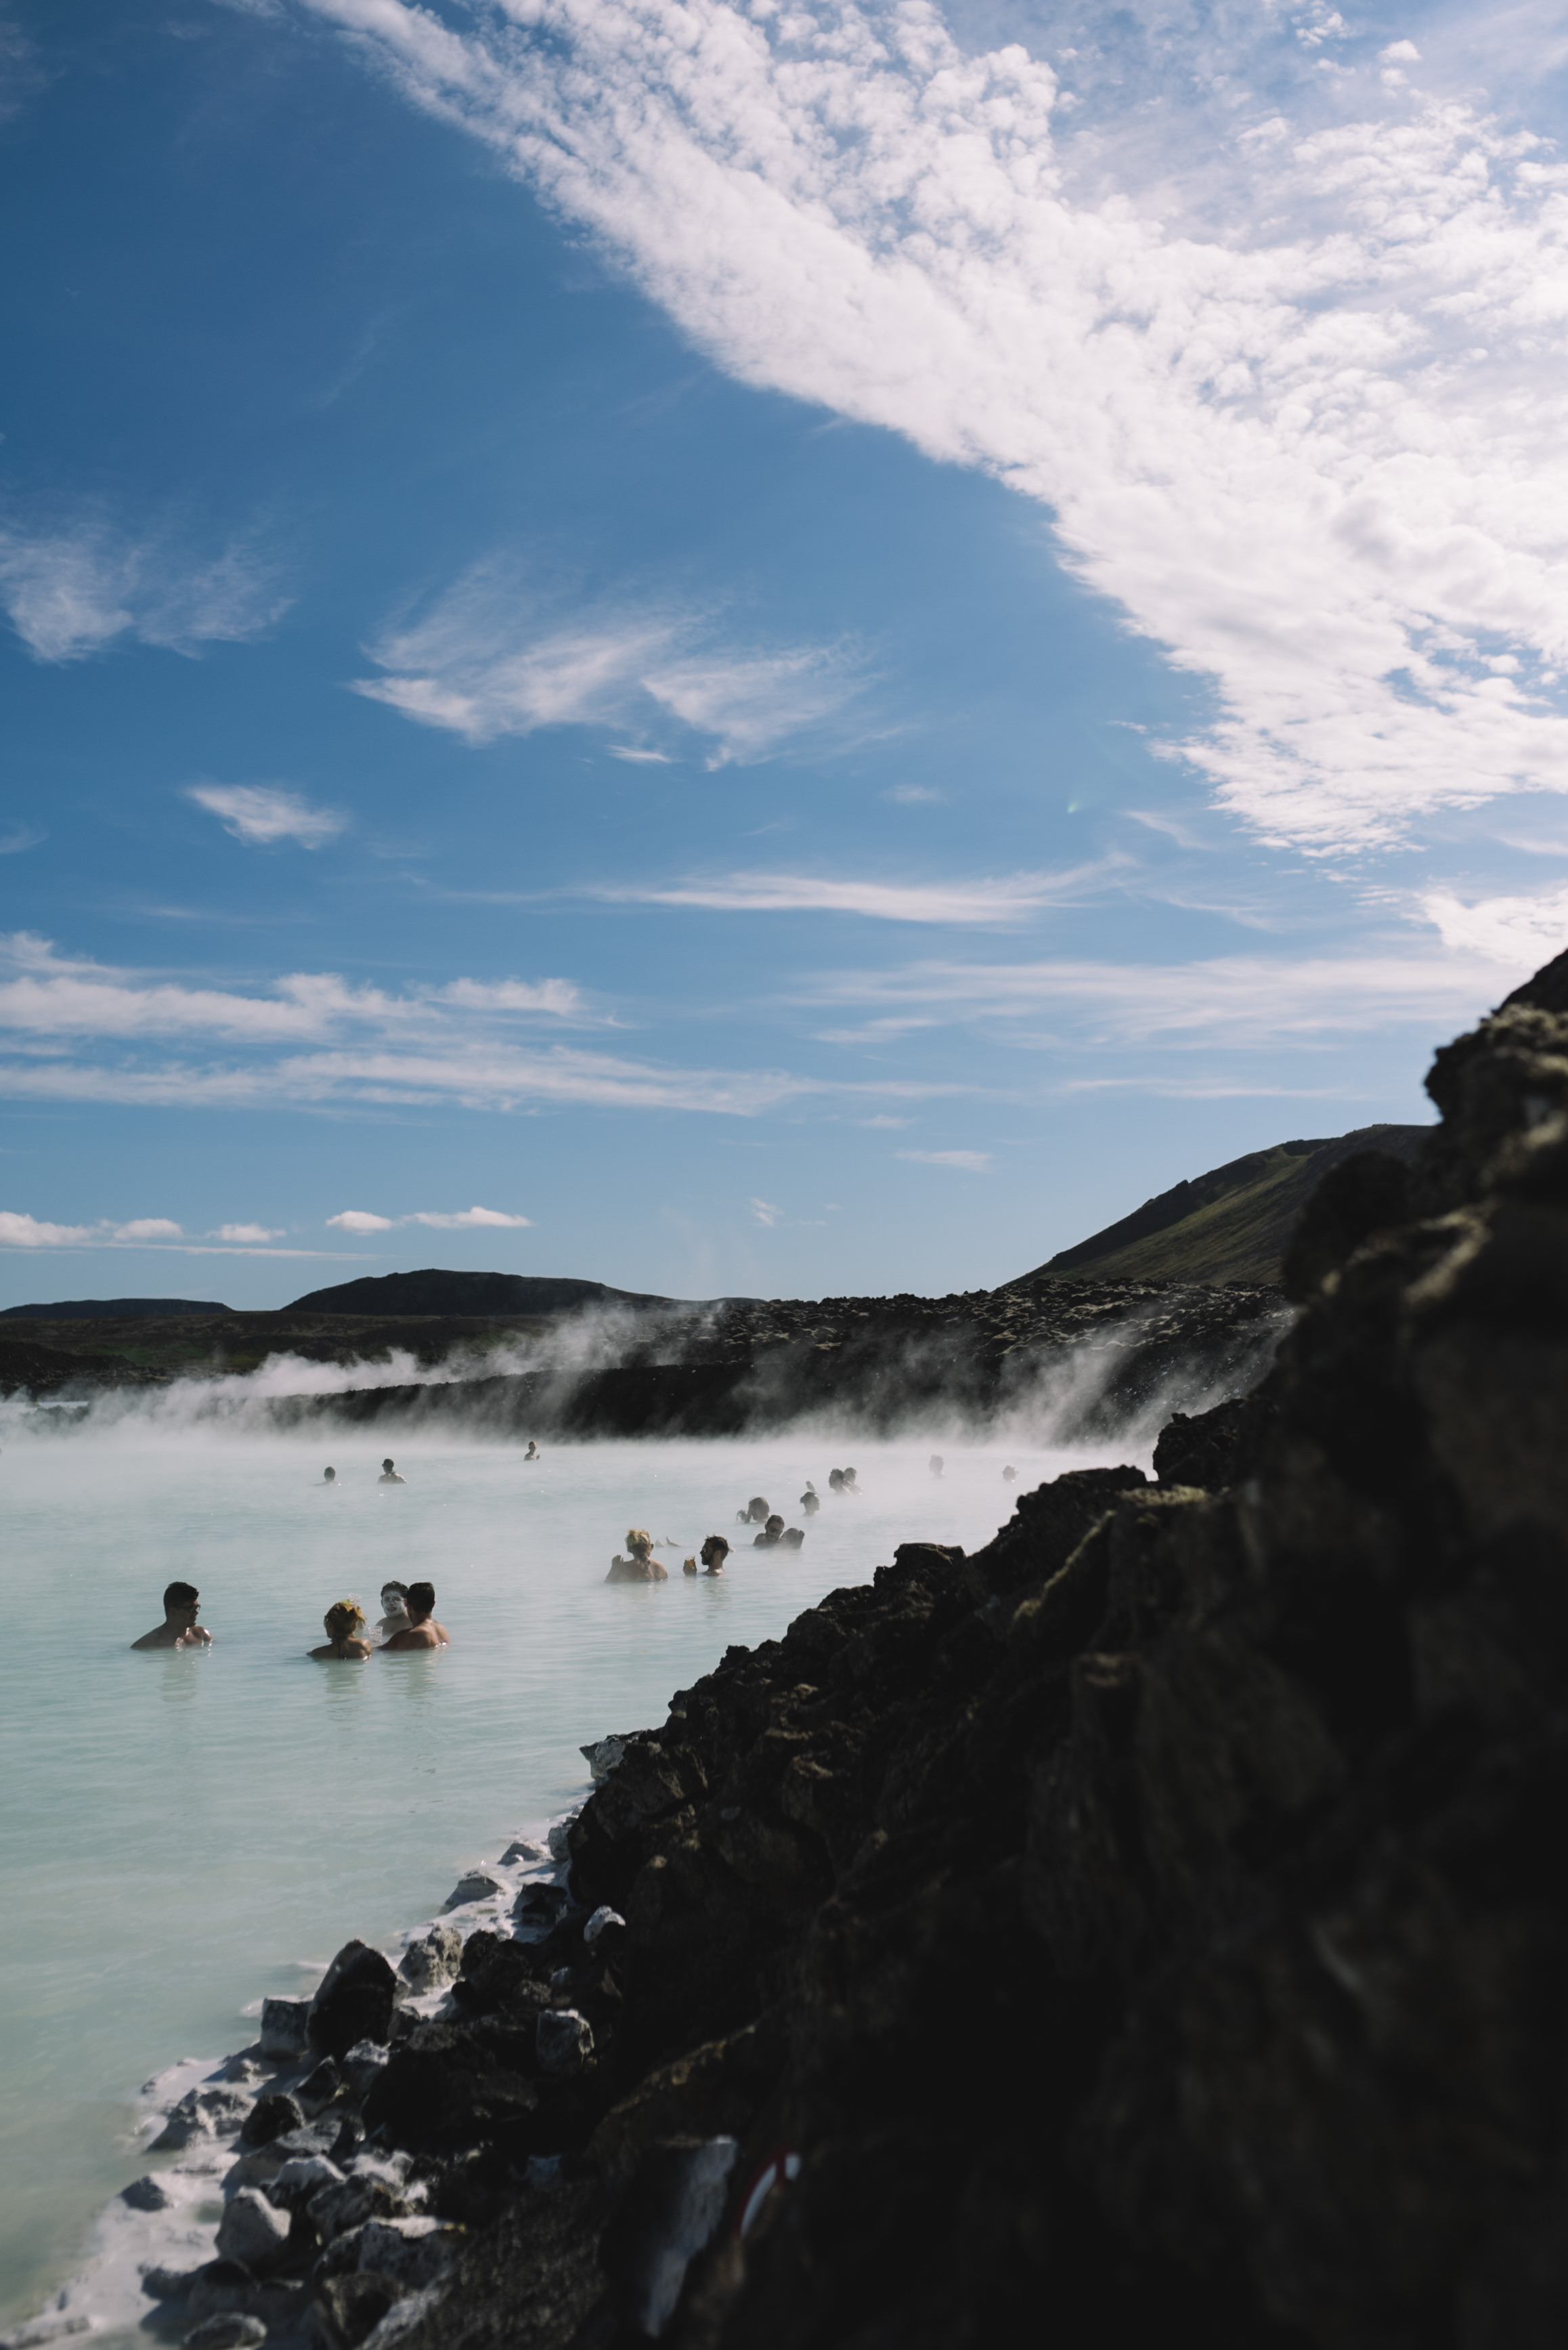 Blue Lagoon - It's not hard to spend an entire day here